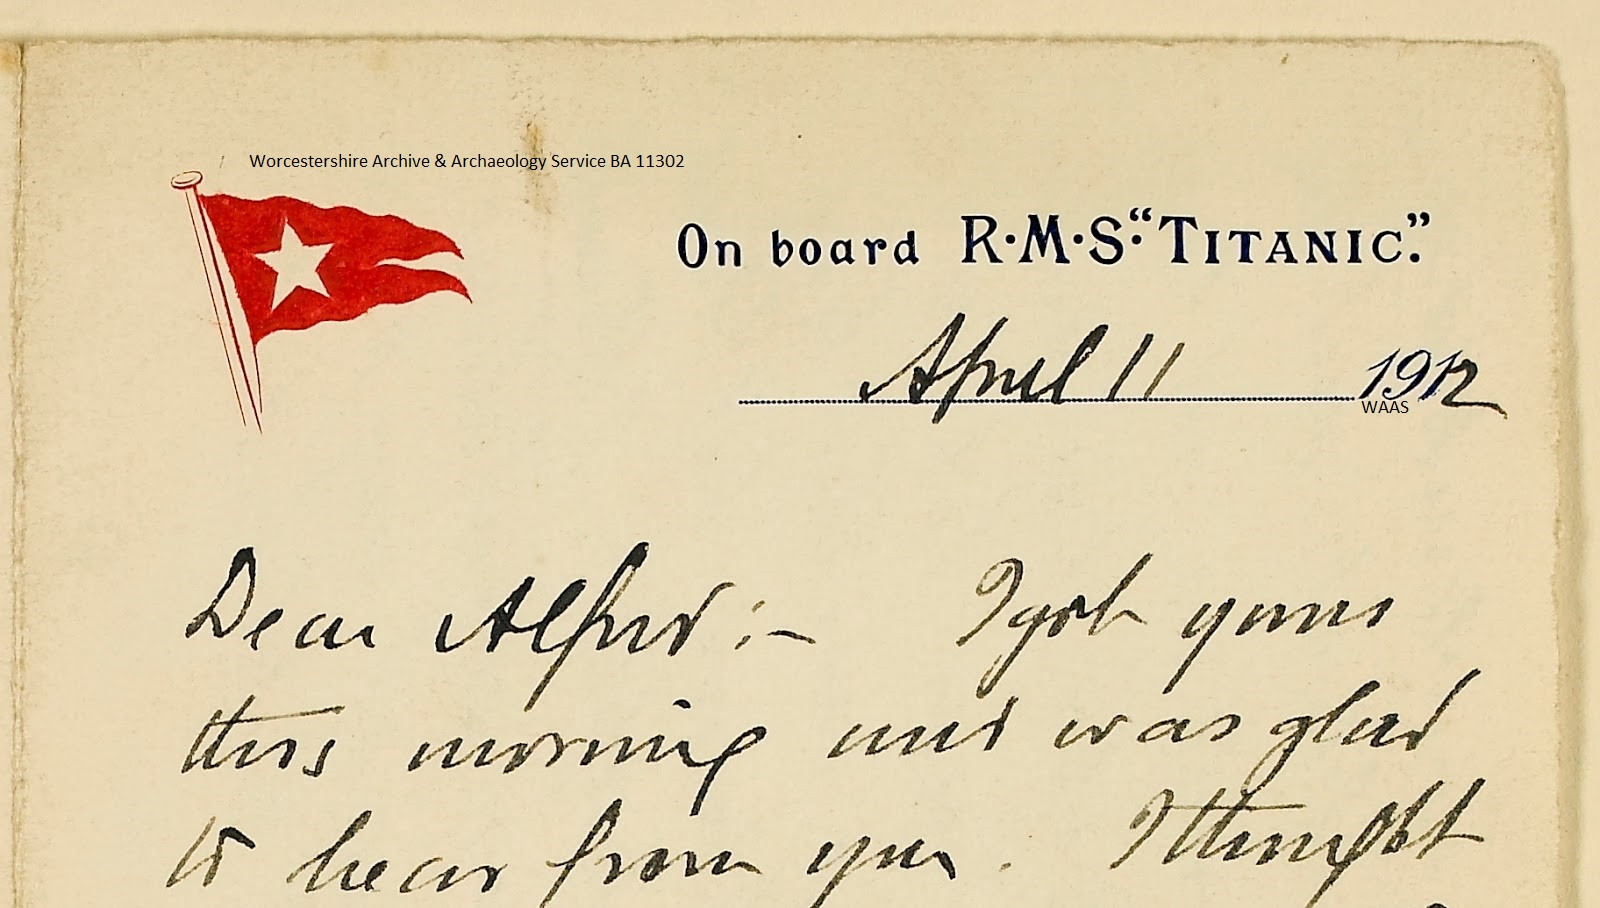 Letter from RMS Titanic